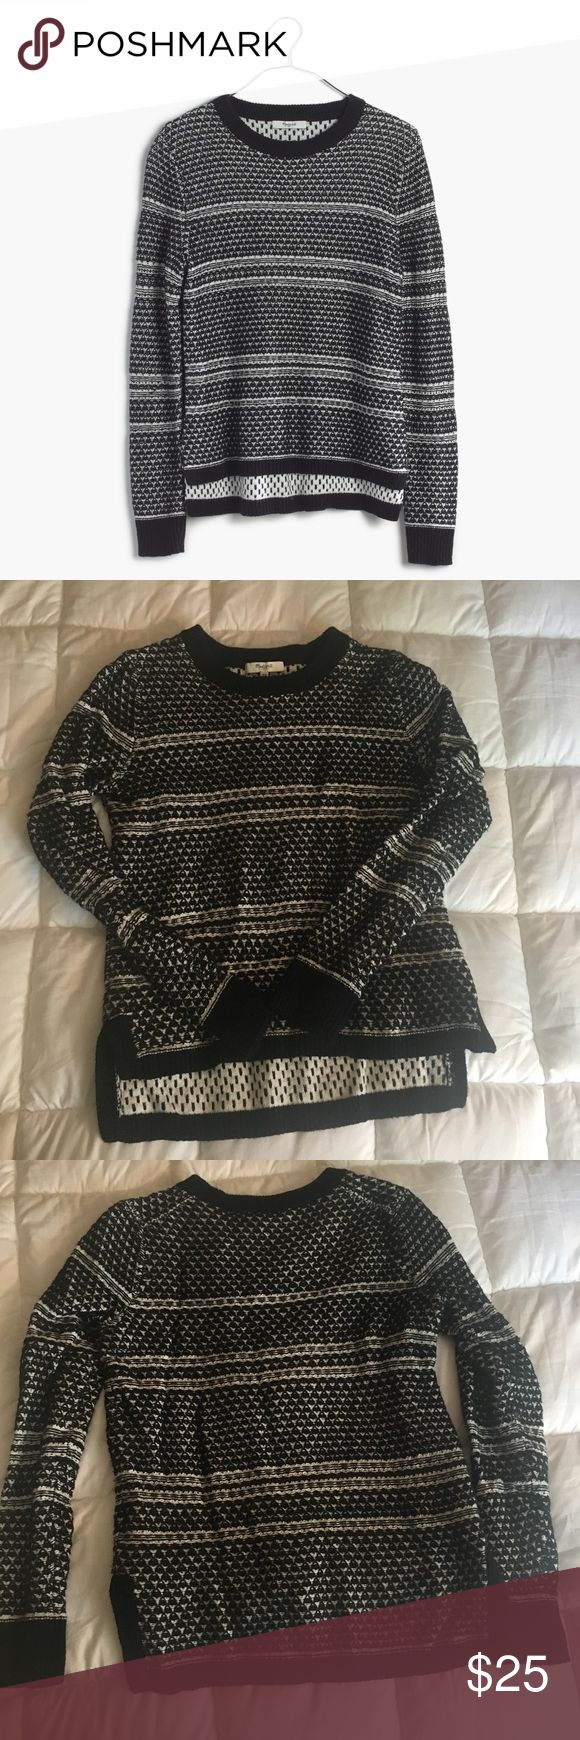 🍁 Madewell Fineprint Pullover Sweater 🍁 Madewell Fineprint Sweater. In very good used condition. Size XS but fits more like a Madewell XXS-XS to me. A classic black and white sweater +  beautiful stitching, I just don't reach for patterns anymore and am cleaning closet. ❌ Sorry, no trades! ❌ Madewell Sweaters Crew & Scoop Necks